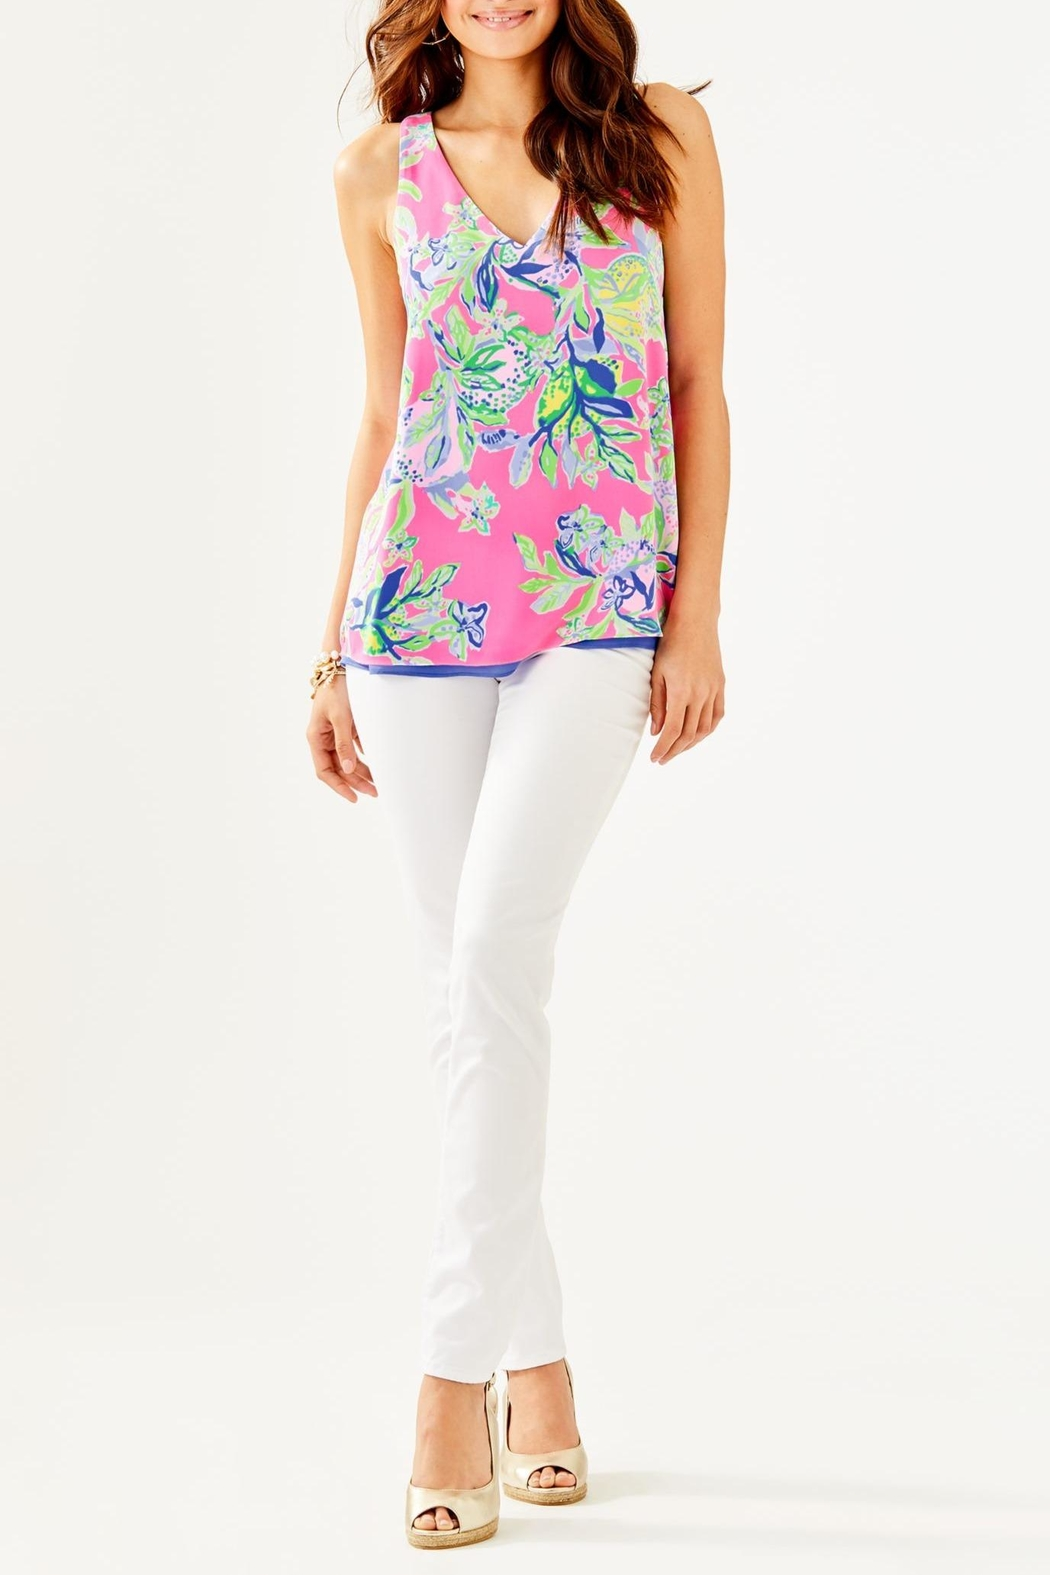 Lilly Pulitzer Florin V-Neck Top - Back Cropped Image